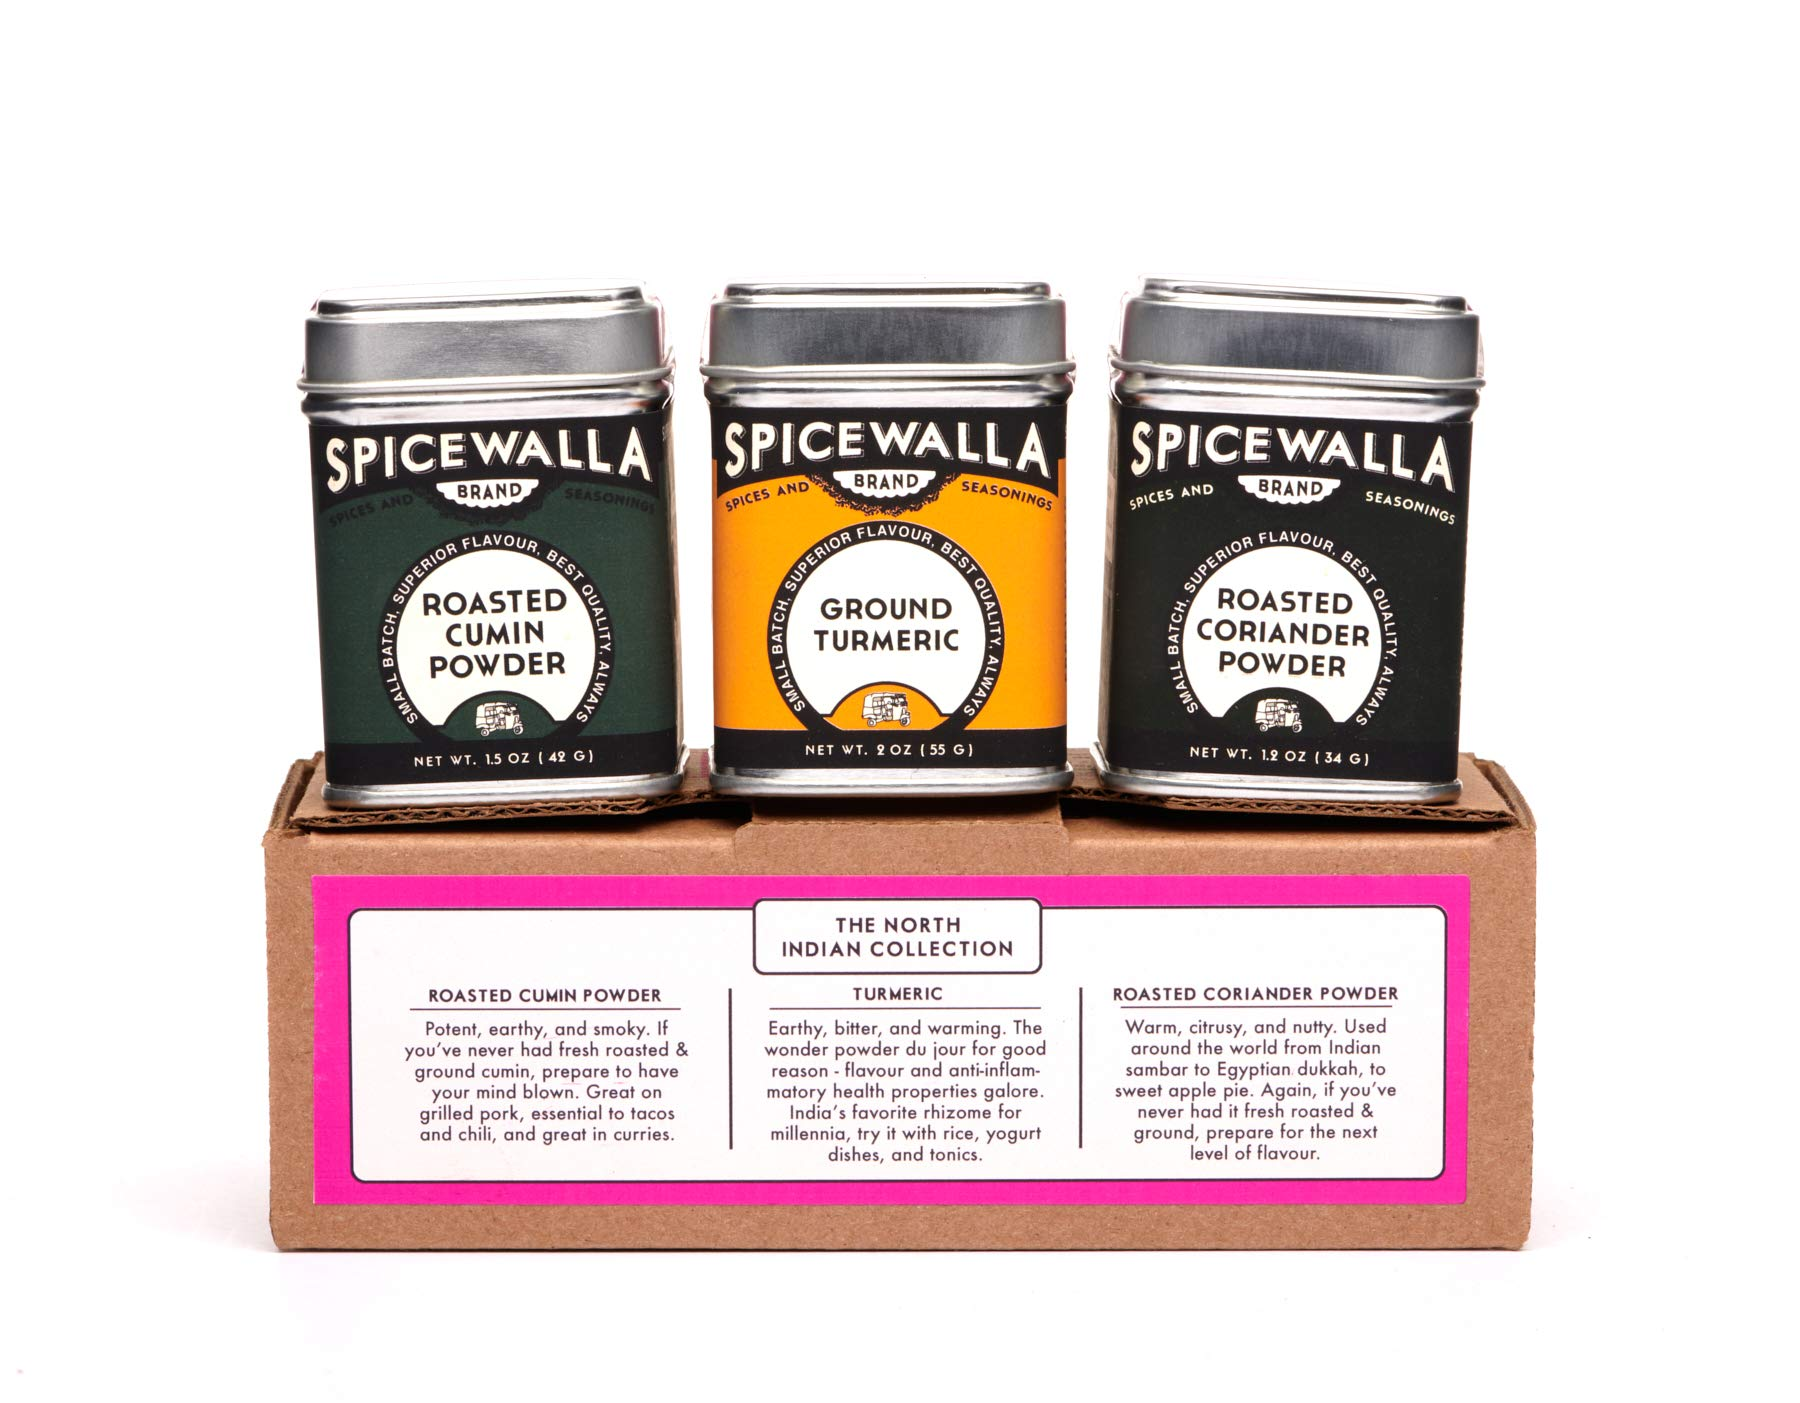 Spicewalla North Indian Spice Collection 3 Pack   Turmeric, Roasted Cumin Powder, Roasted Coriander Powder   Authentic Indian Flavors